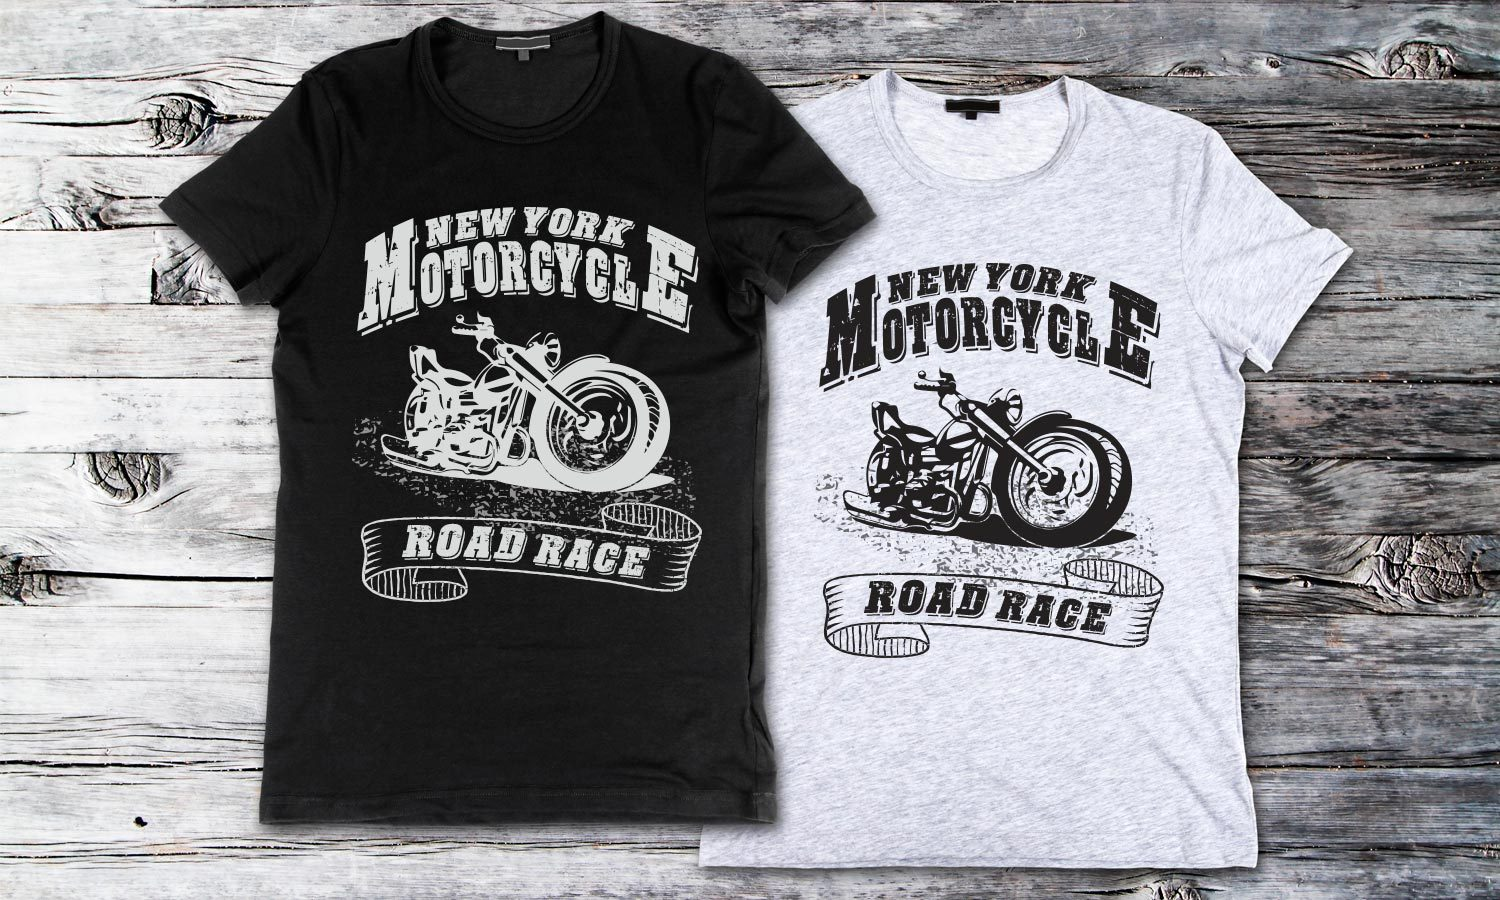 Road Race - Printed T-Shirt for Men, Women and Kids - TS172